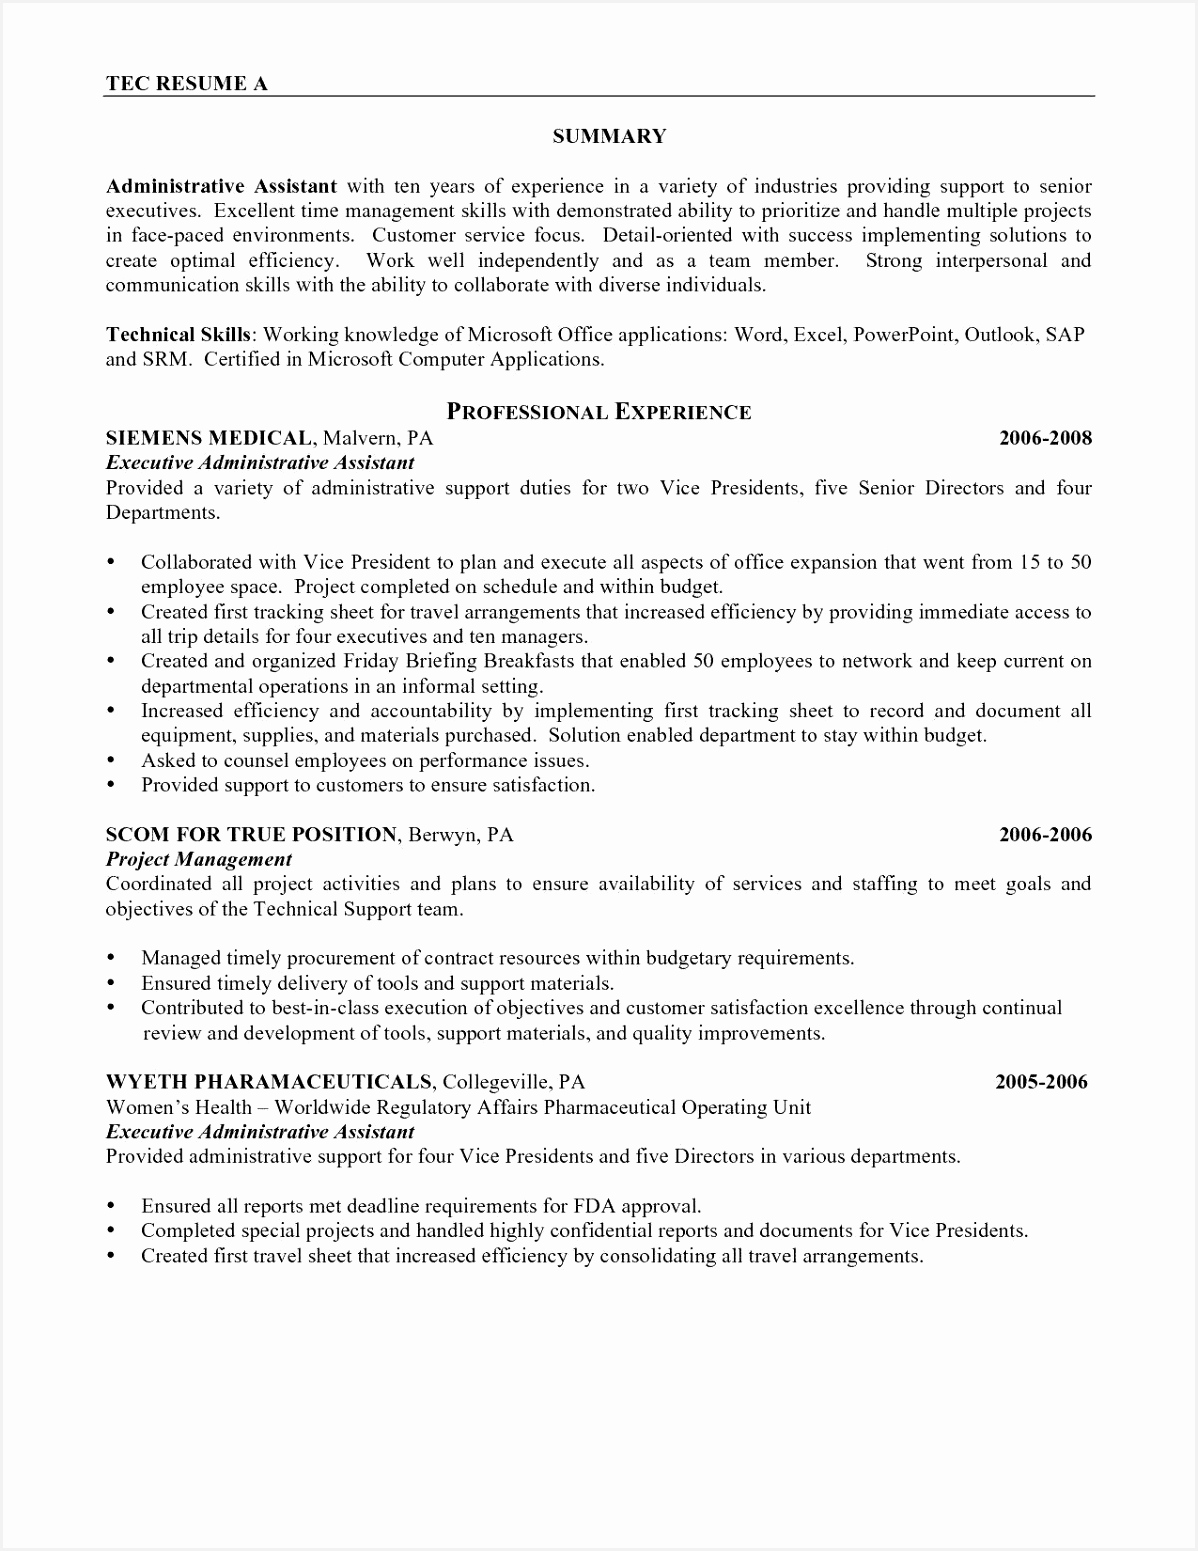 Resume Sample Administrative Valid Best Resume Samples New Resume Examples Pdf Best Resume Pdf 0d Voir 15511198dhqo